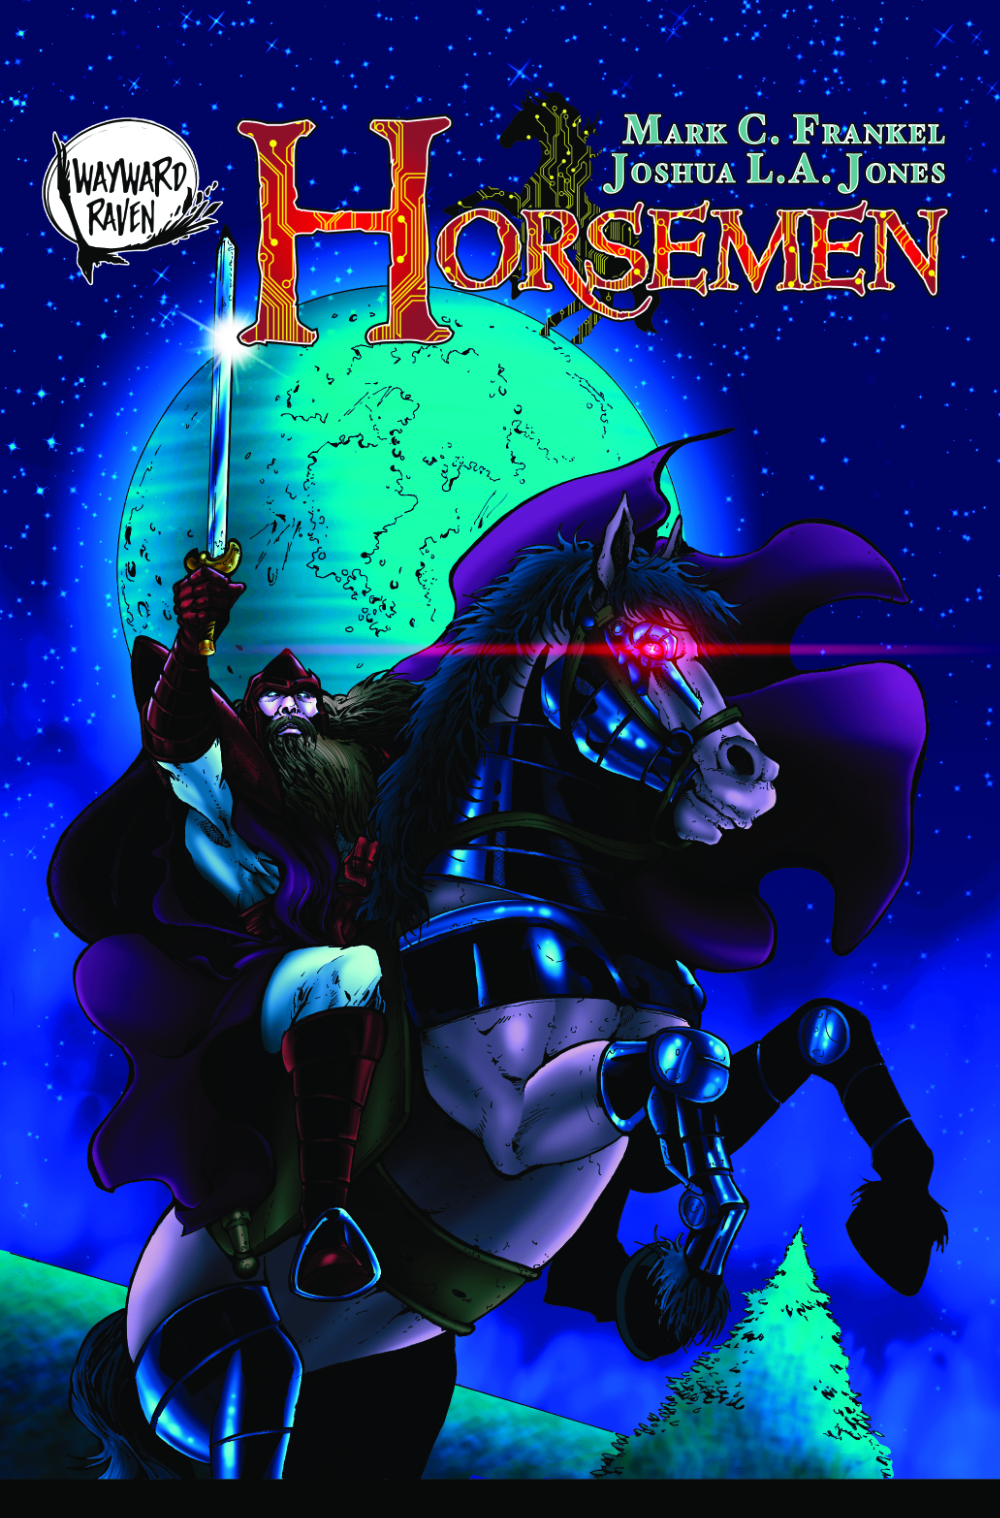 Horsemen - Complete Graphic Novel